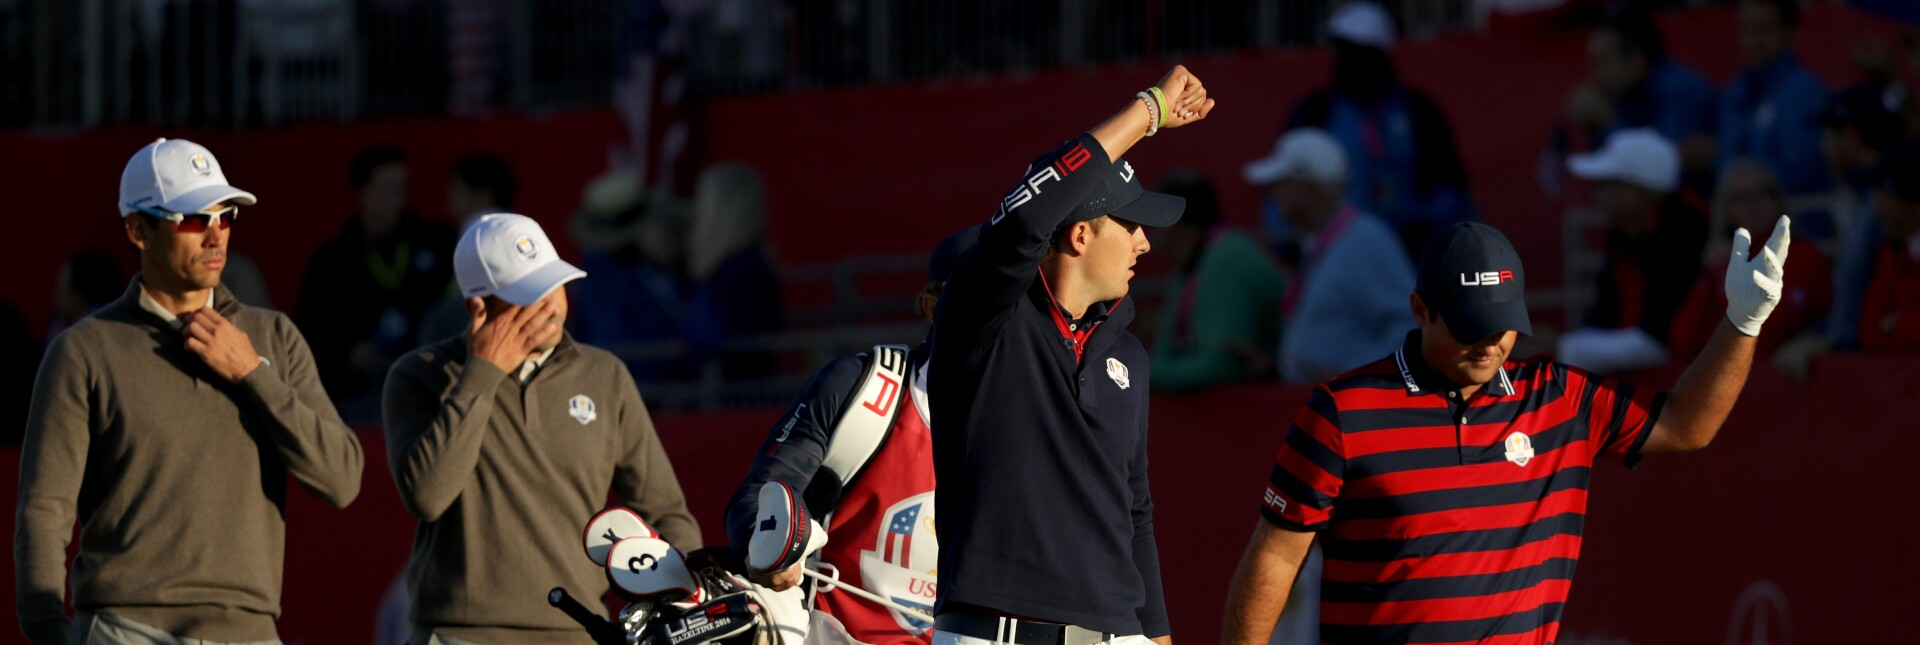 Jordan Spieth and Patrick Reed  2016 Ryder Cup - Morning Foursome Matches